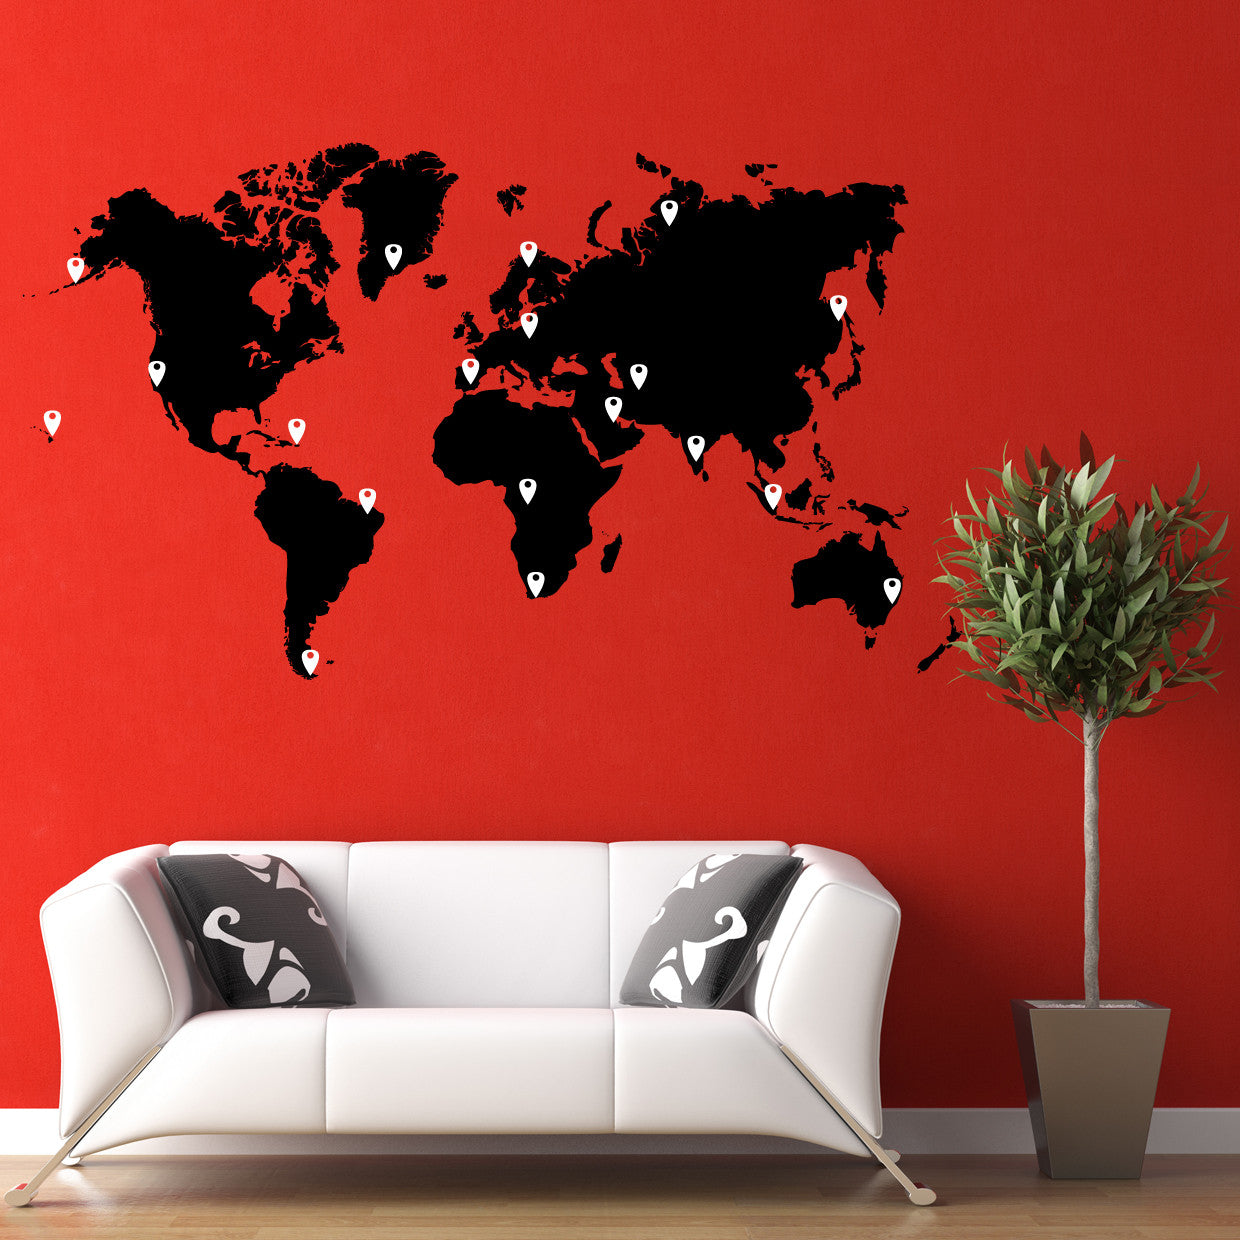 World map vinyl wall decal world map with pins world map pin drops decal 873 amipublicfo Gallery